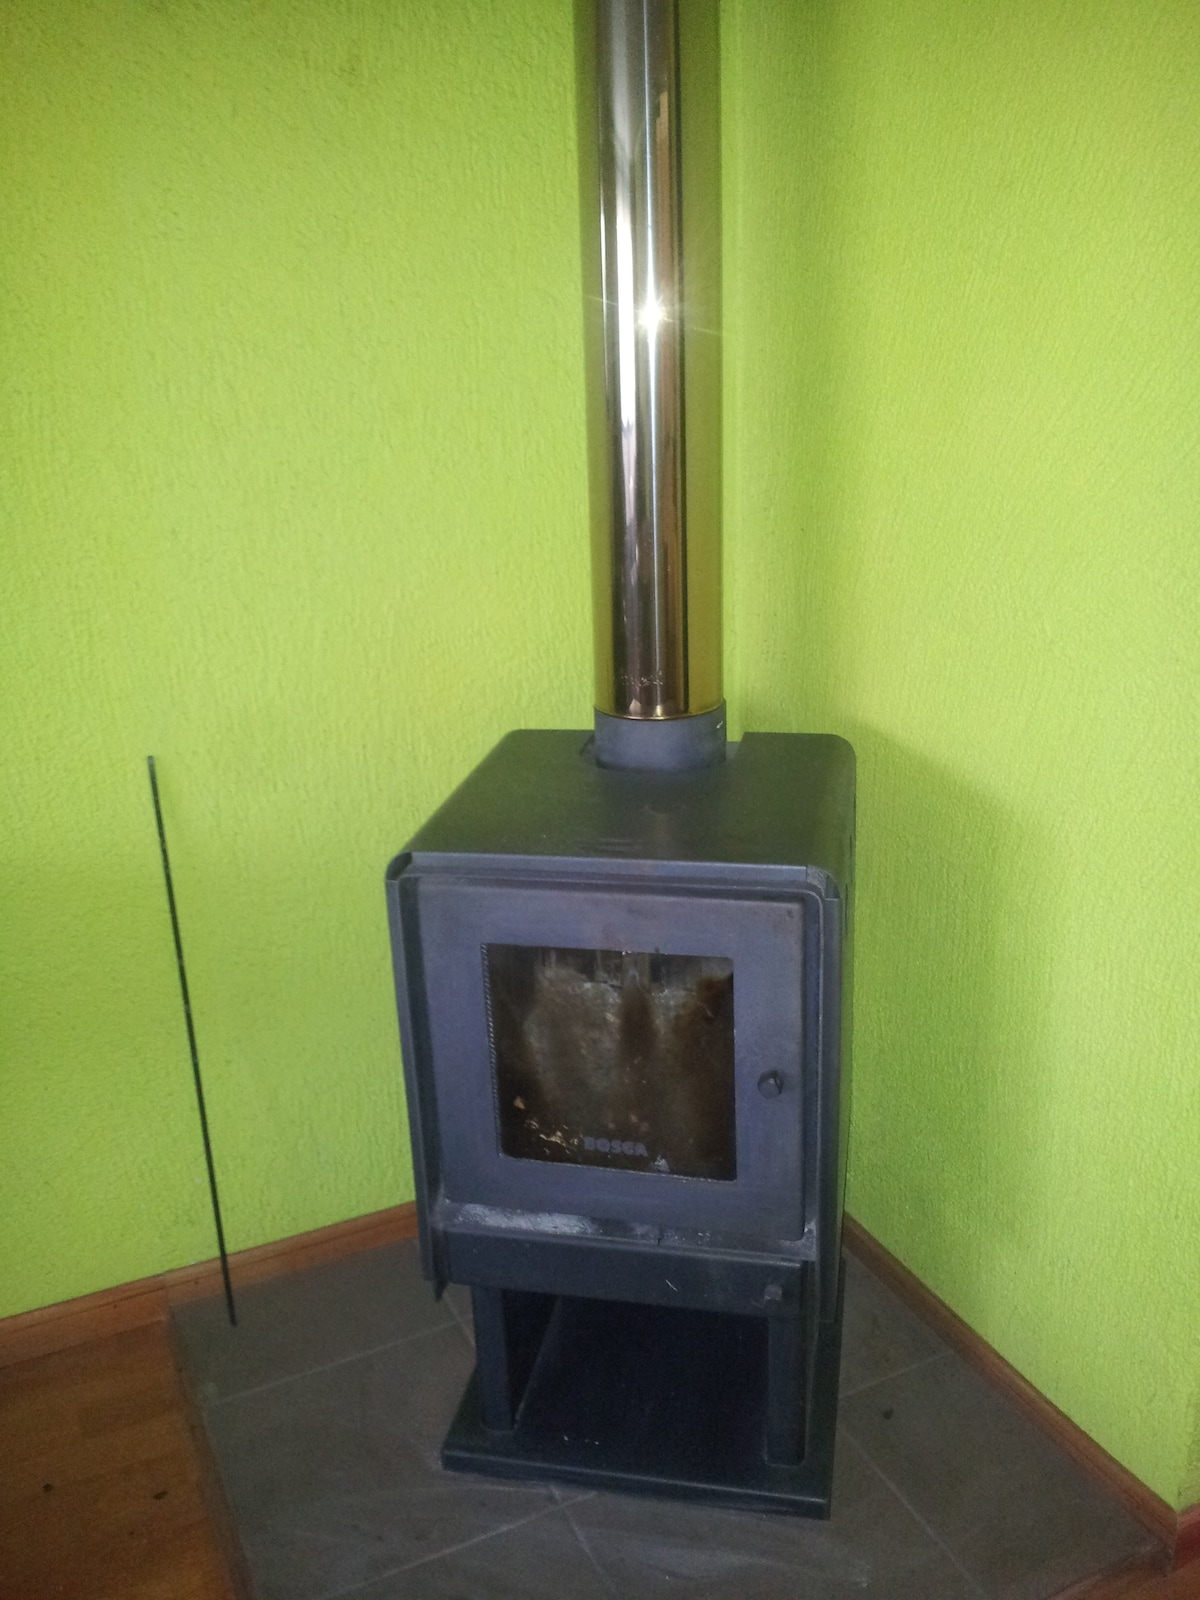 Wood burning stove for winter